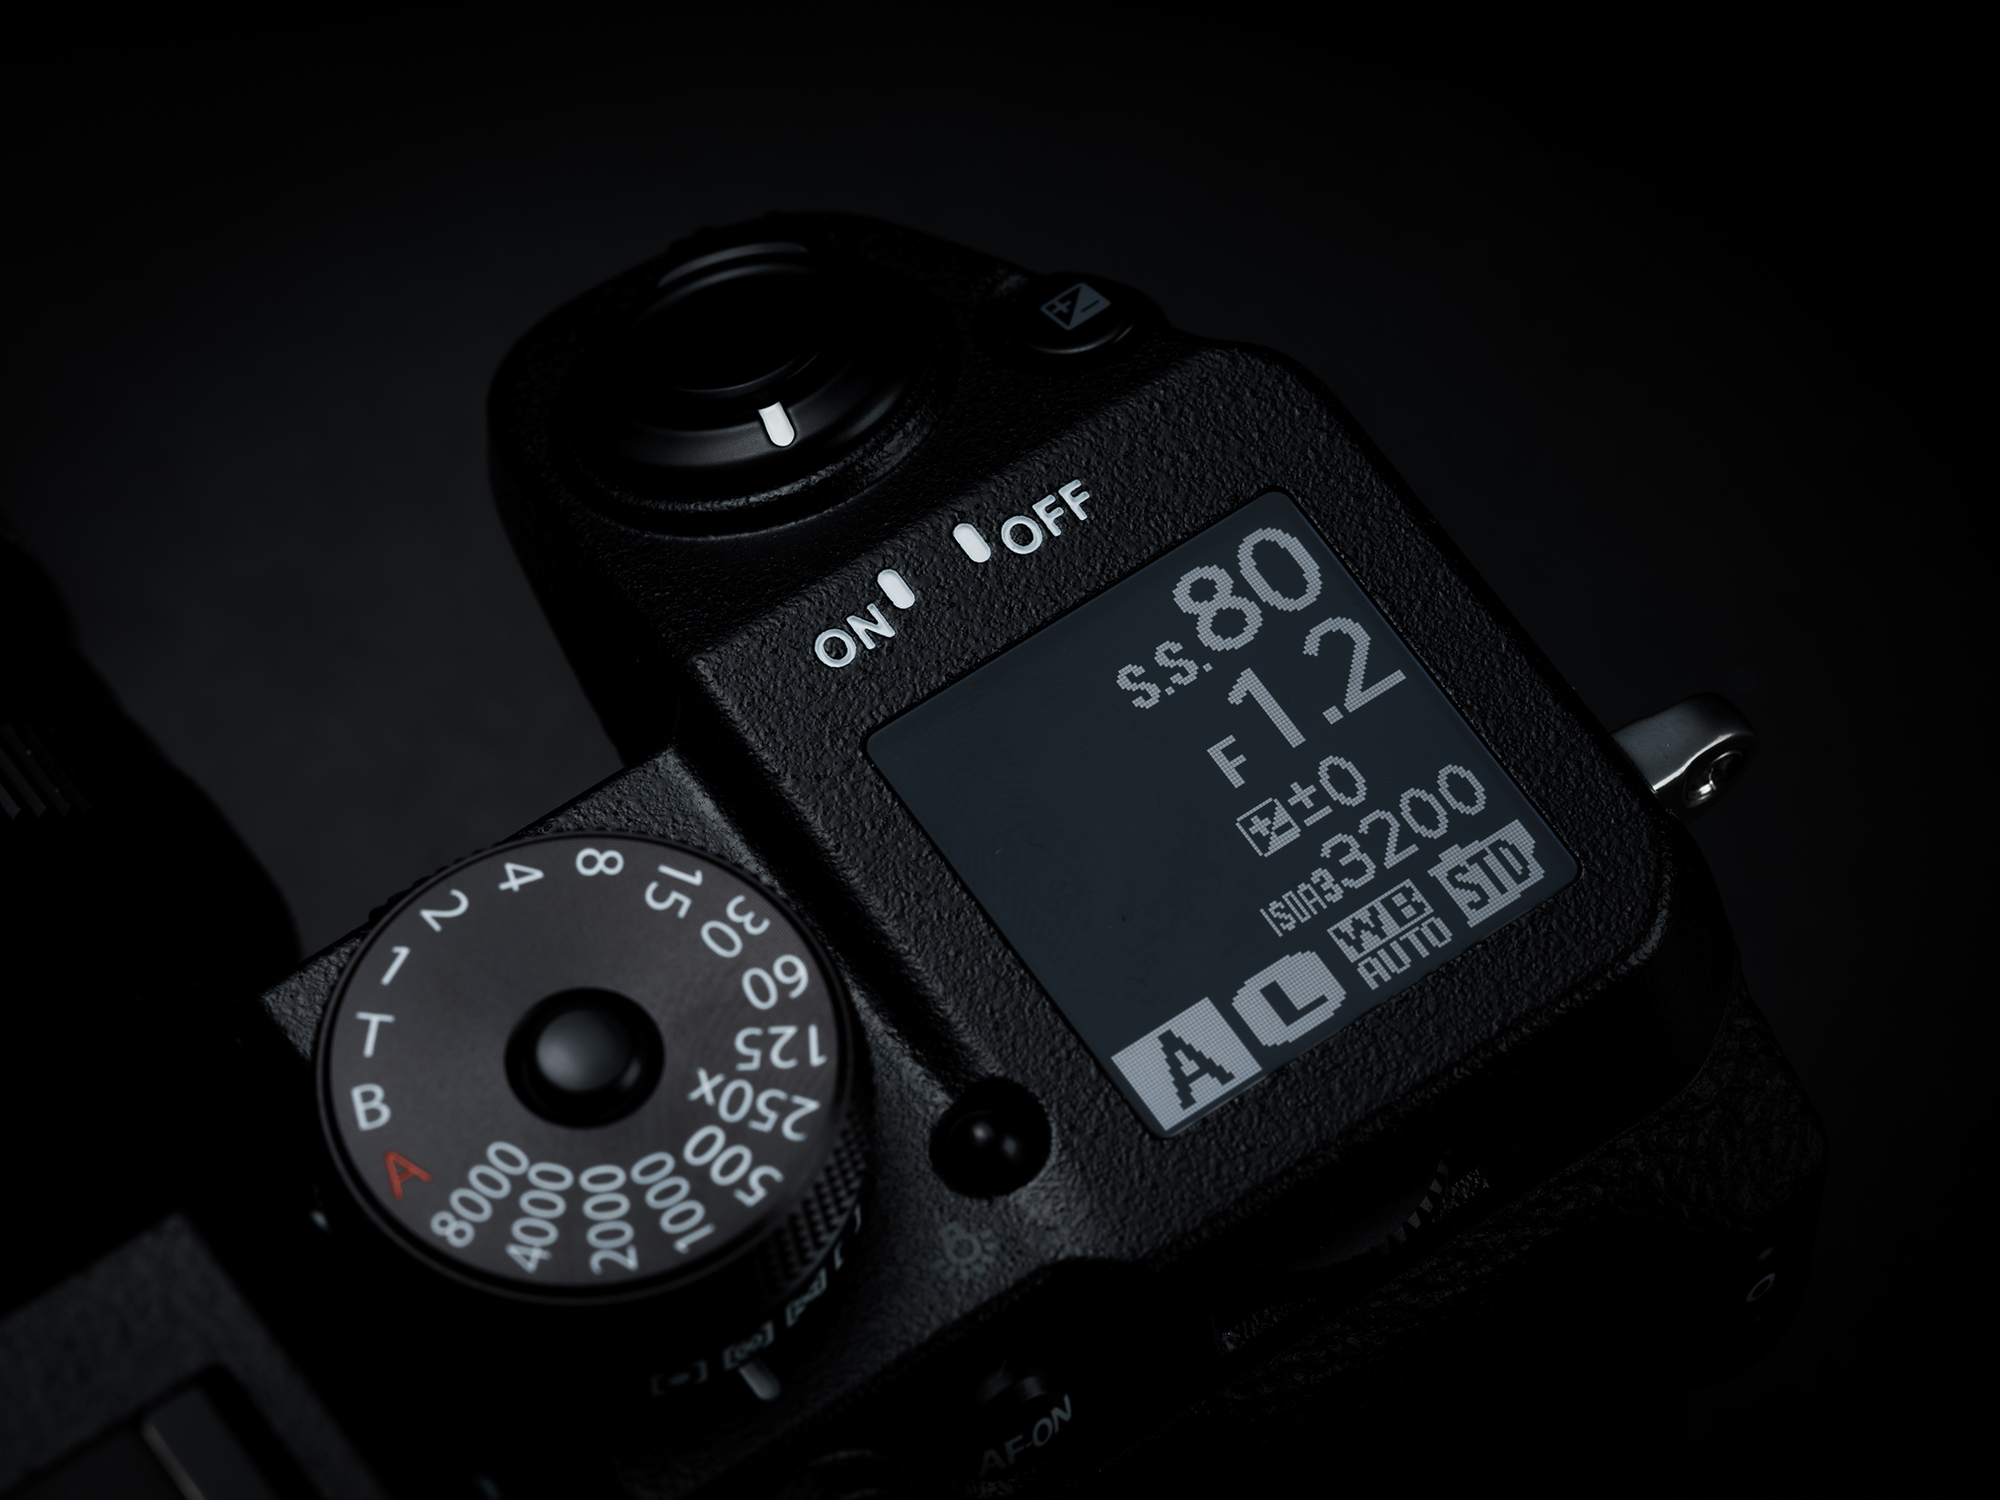 WPPI 2018: Fujifilm Launches Stabilized X-H1 Camera and MKX